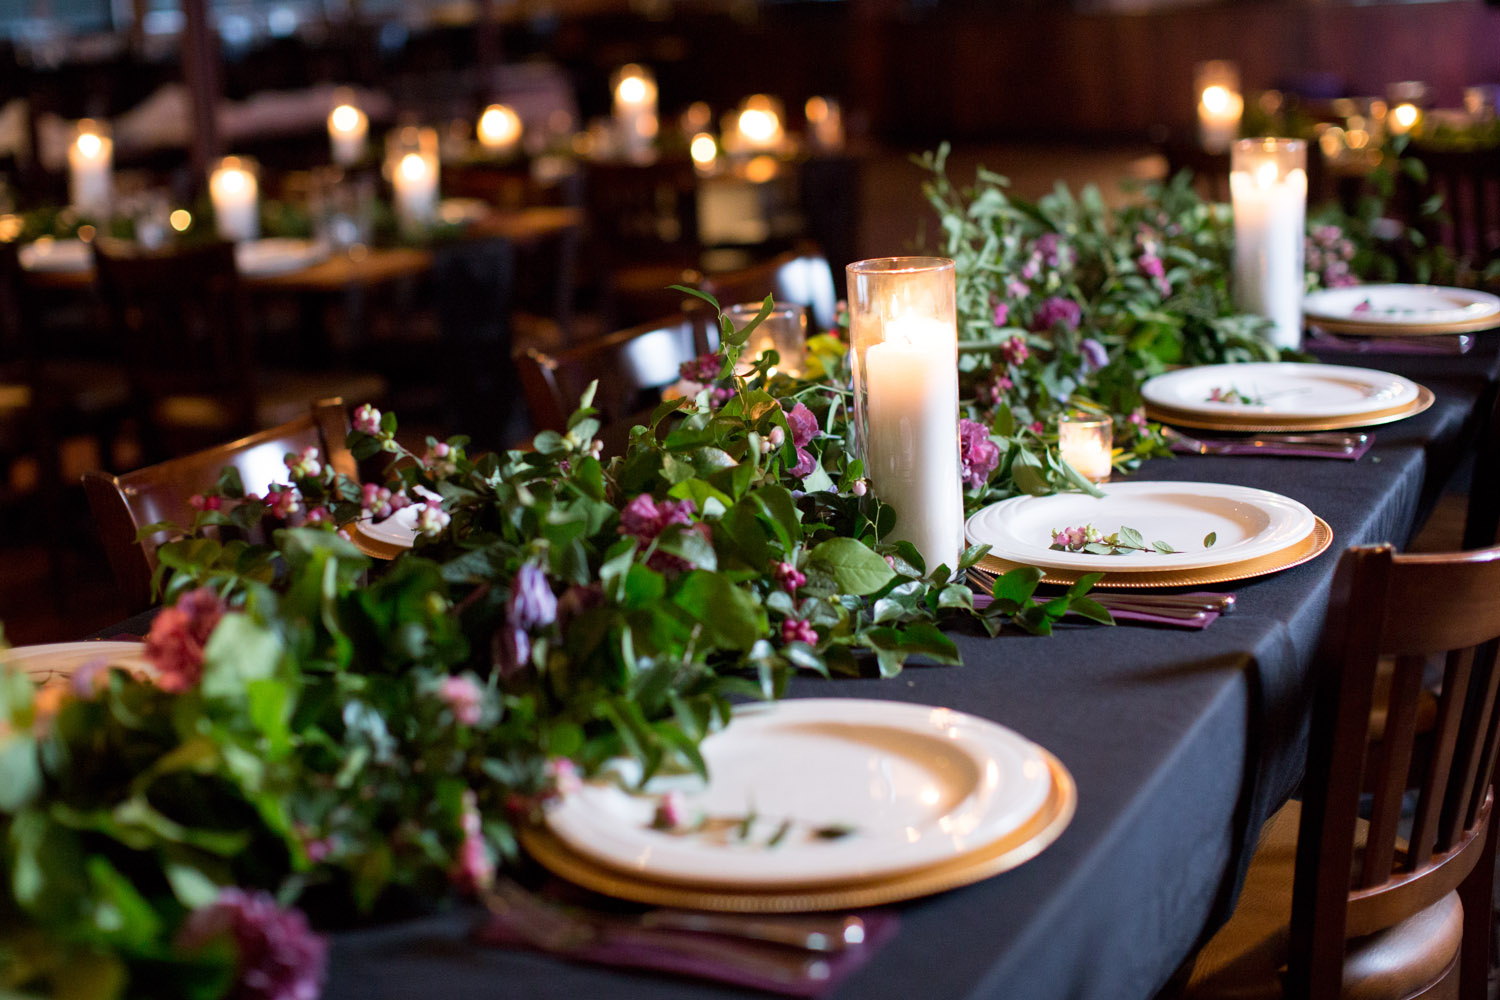 21-crooners-jazz-club-music-wedding-photographer-styled-shoot-reception-details-table-settings-place-setting-black-table-cloth-gold-charger-plum-napkins-head-table-candles-mahonen-photography.jpg